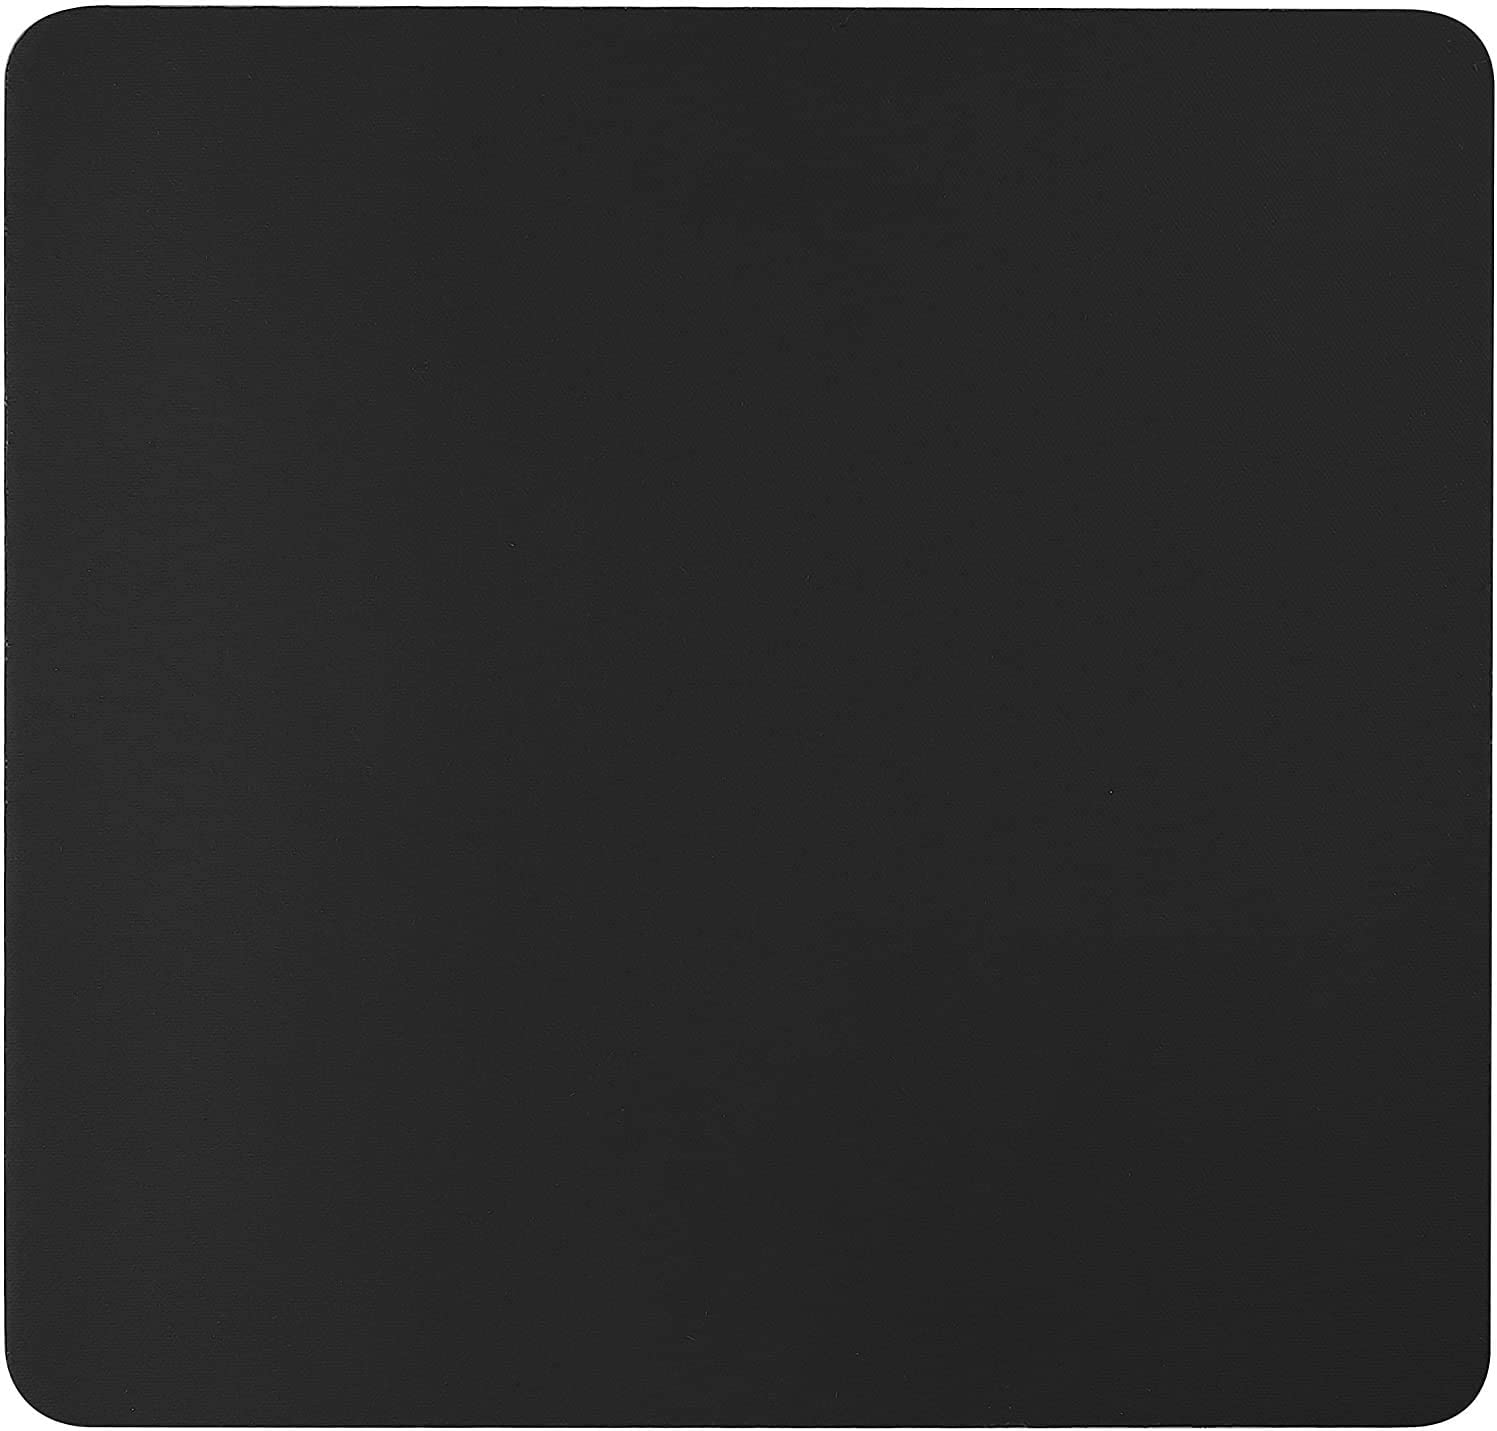 Quality Selection Comfortable Superb Mouse Pad for Home, Office & Gaming, Non-Slip Rubber Base Mousepad, Mouse Pads Compatible with Optical, Laser, Wired & Wireless Mouse for Computer & Laptop, Black